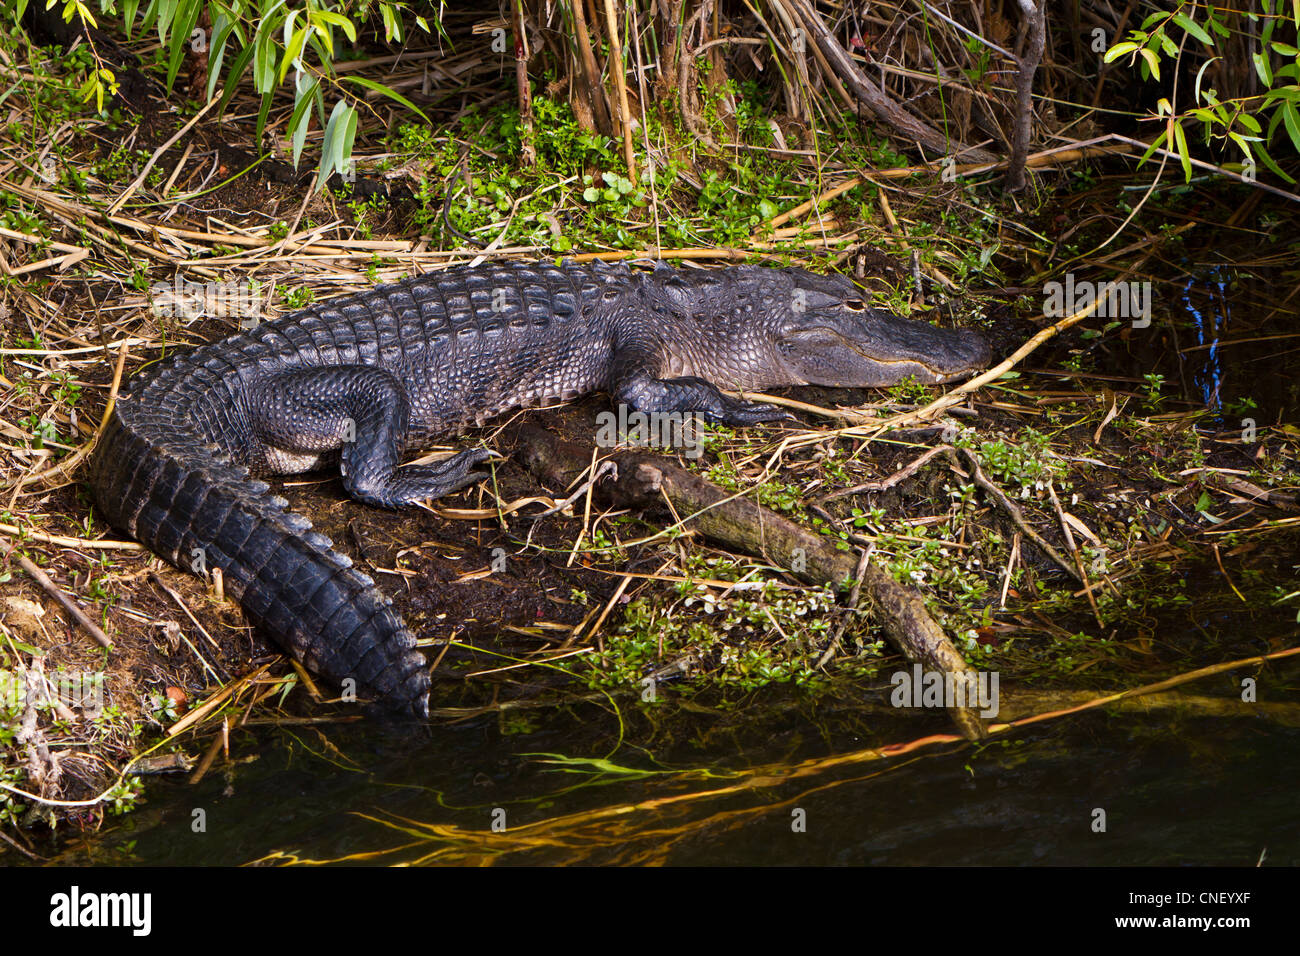 The American alligator in the Everglades National Park, Florida, USA. - Stock Image